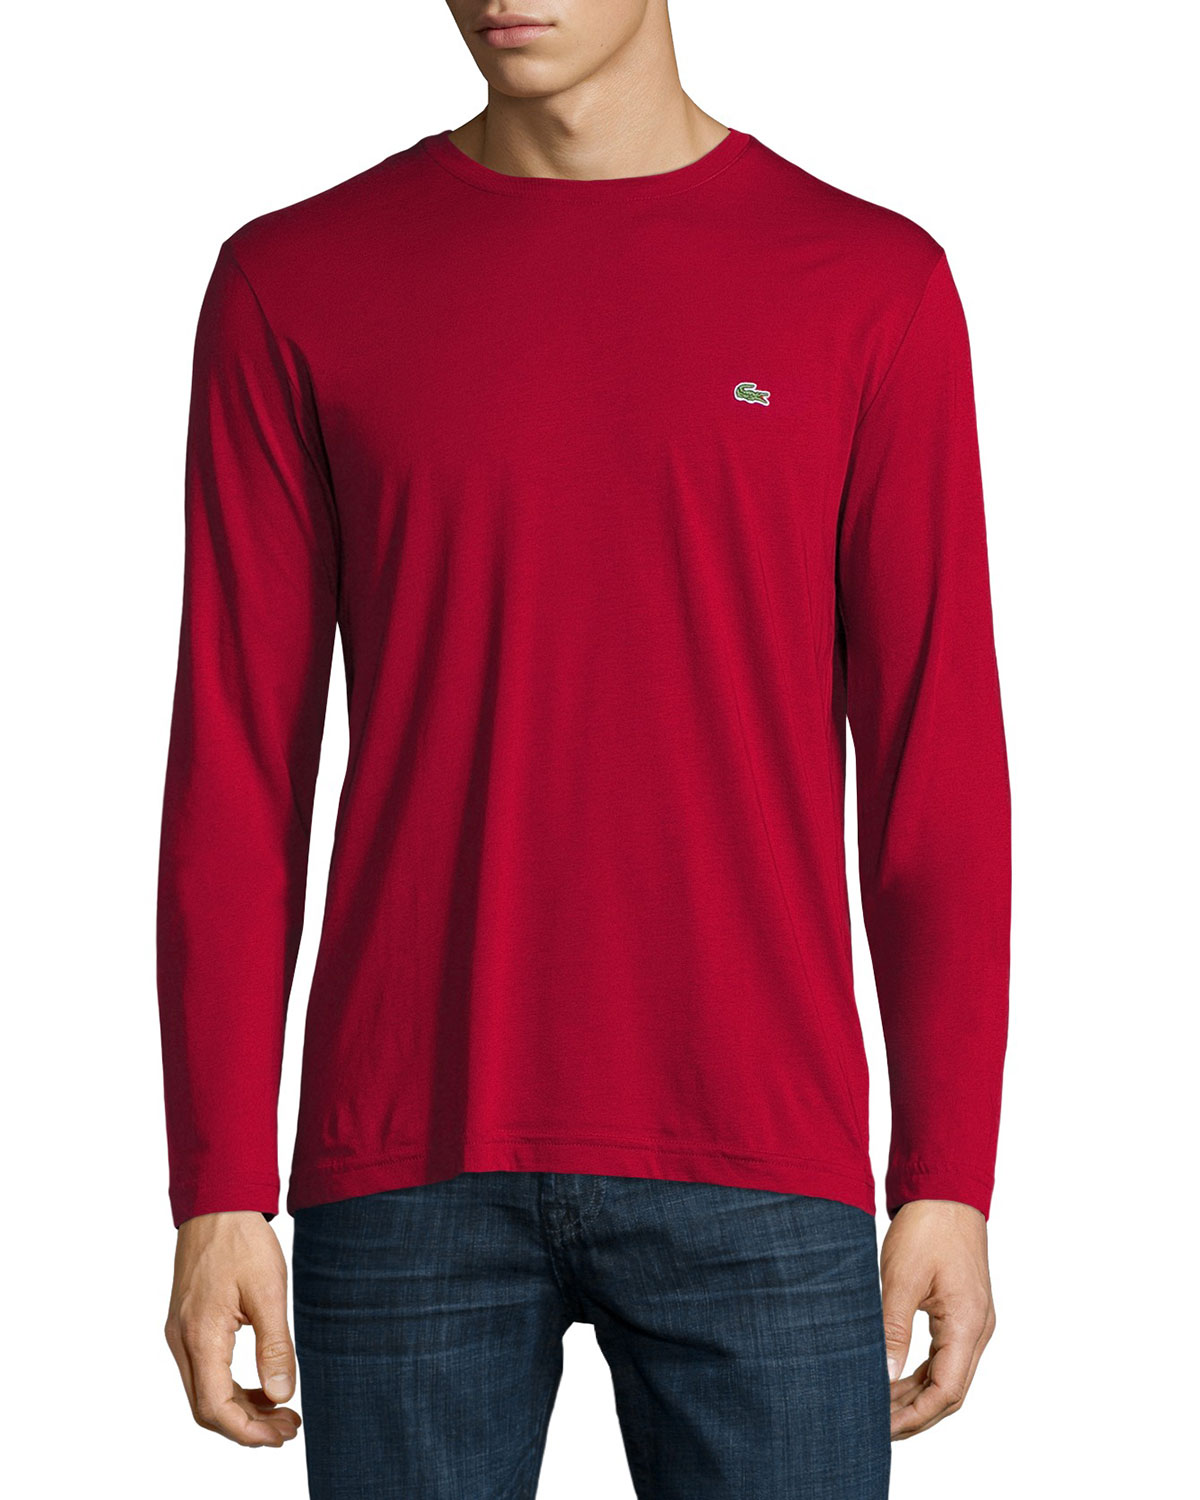 41daf83fa958eb lacoste Three-Pack Pima Cotton Long-Sleeve T-Shirts